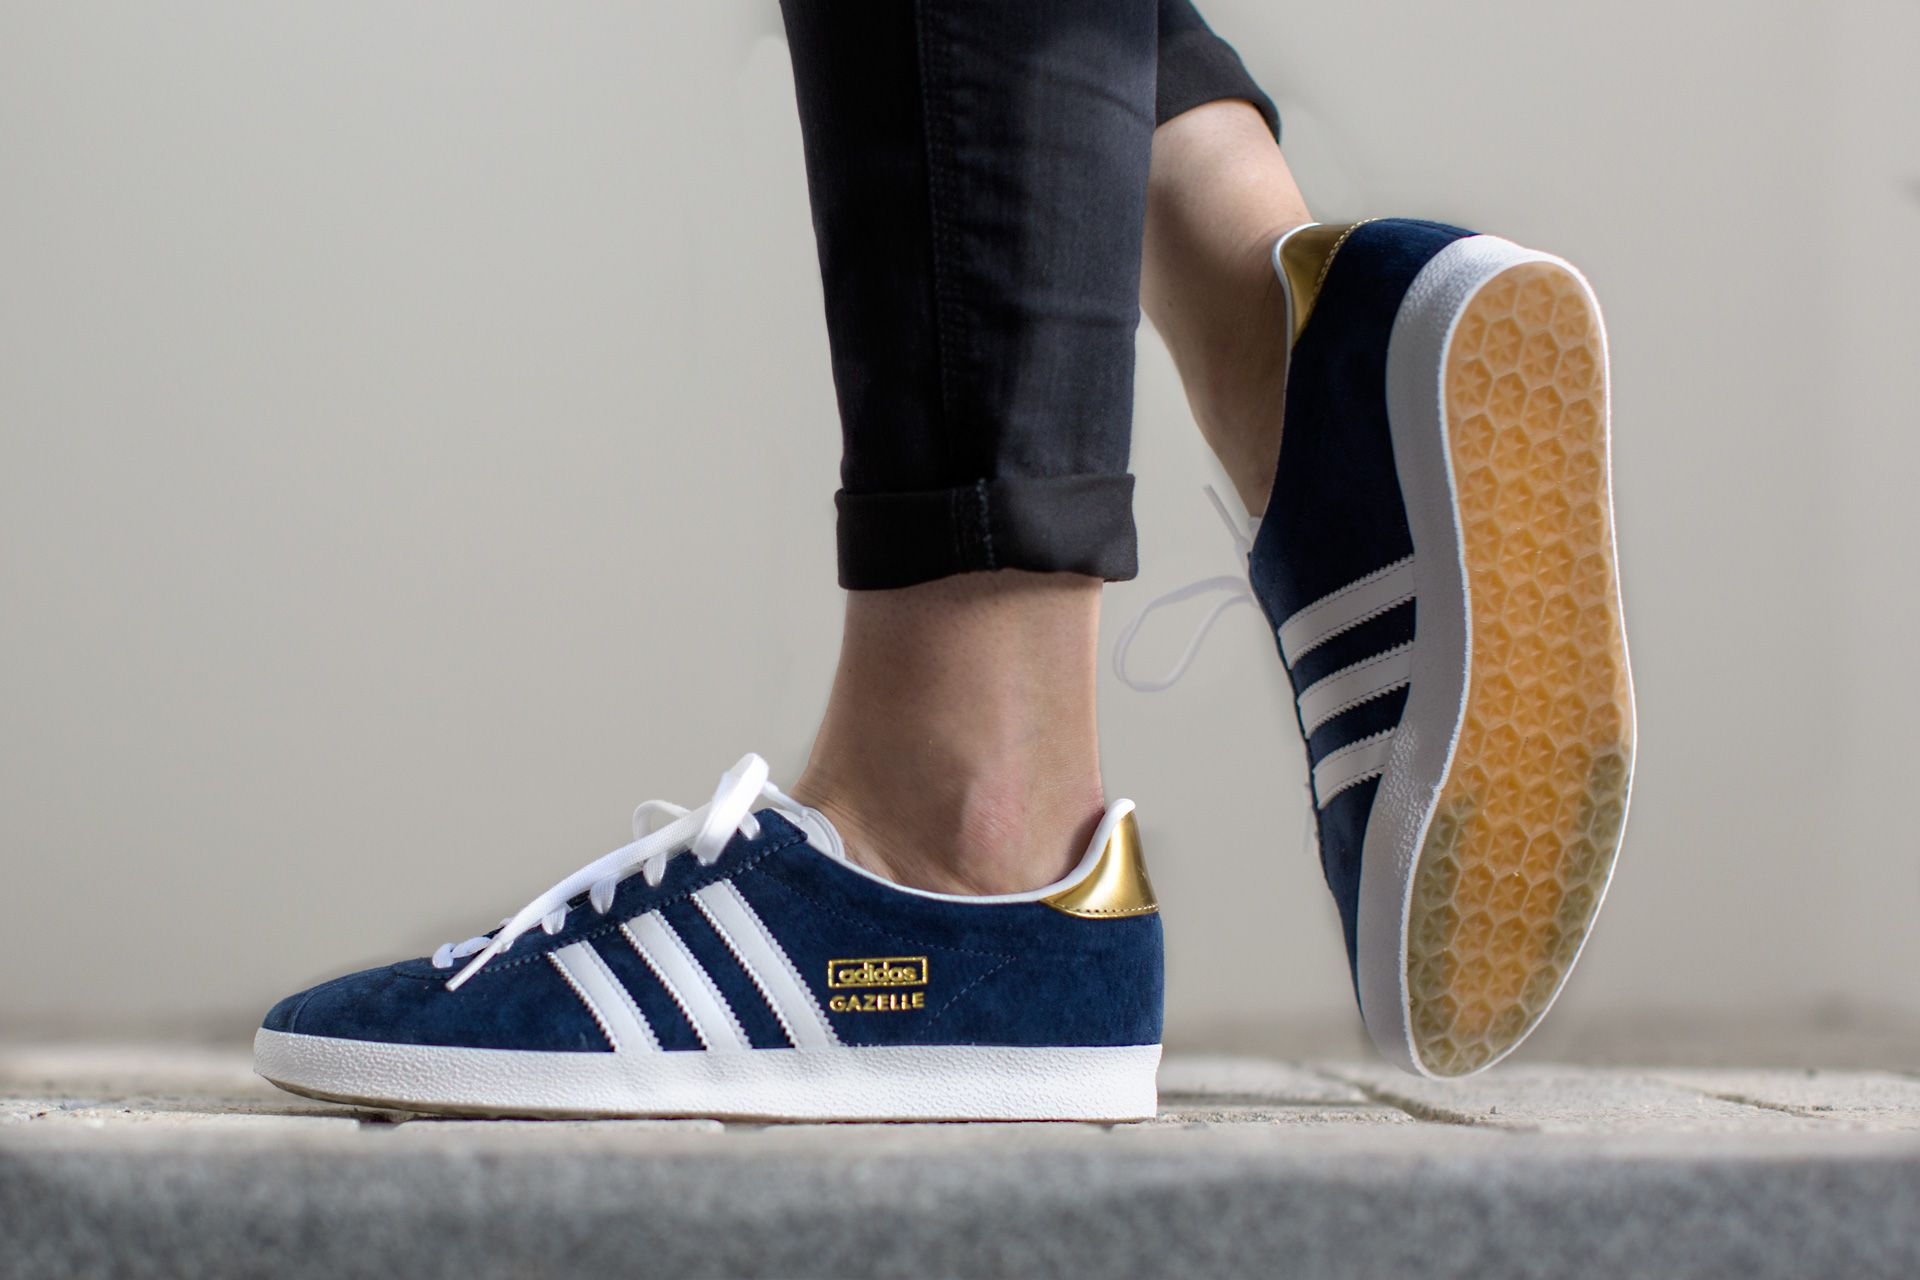 women's adidas originals gazelle shoes